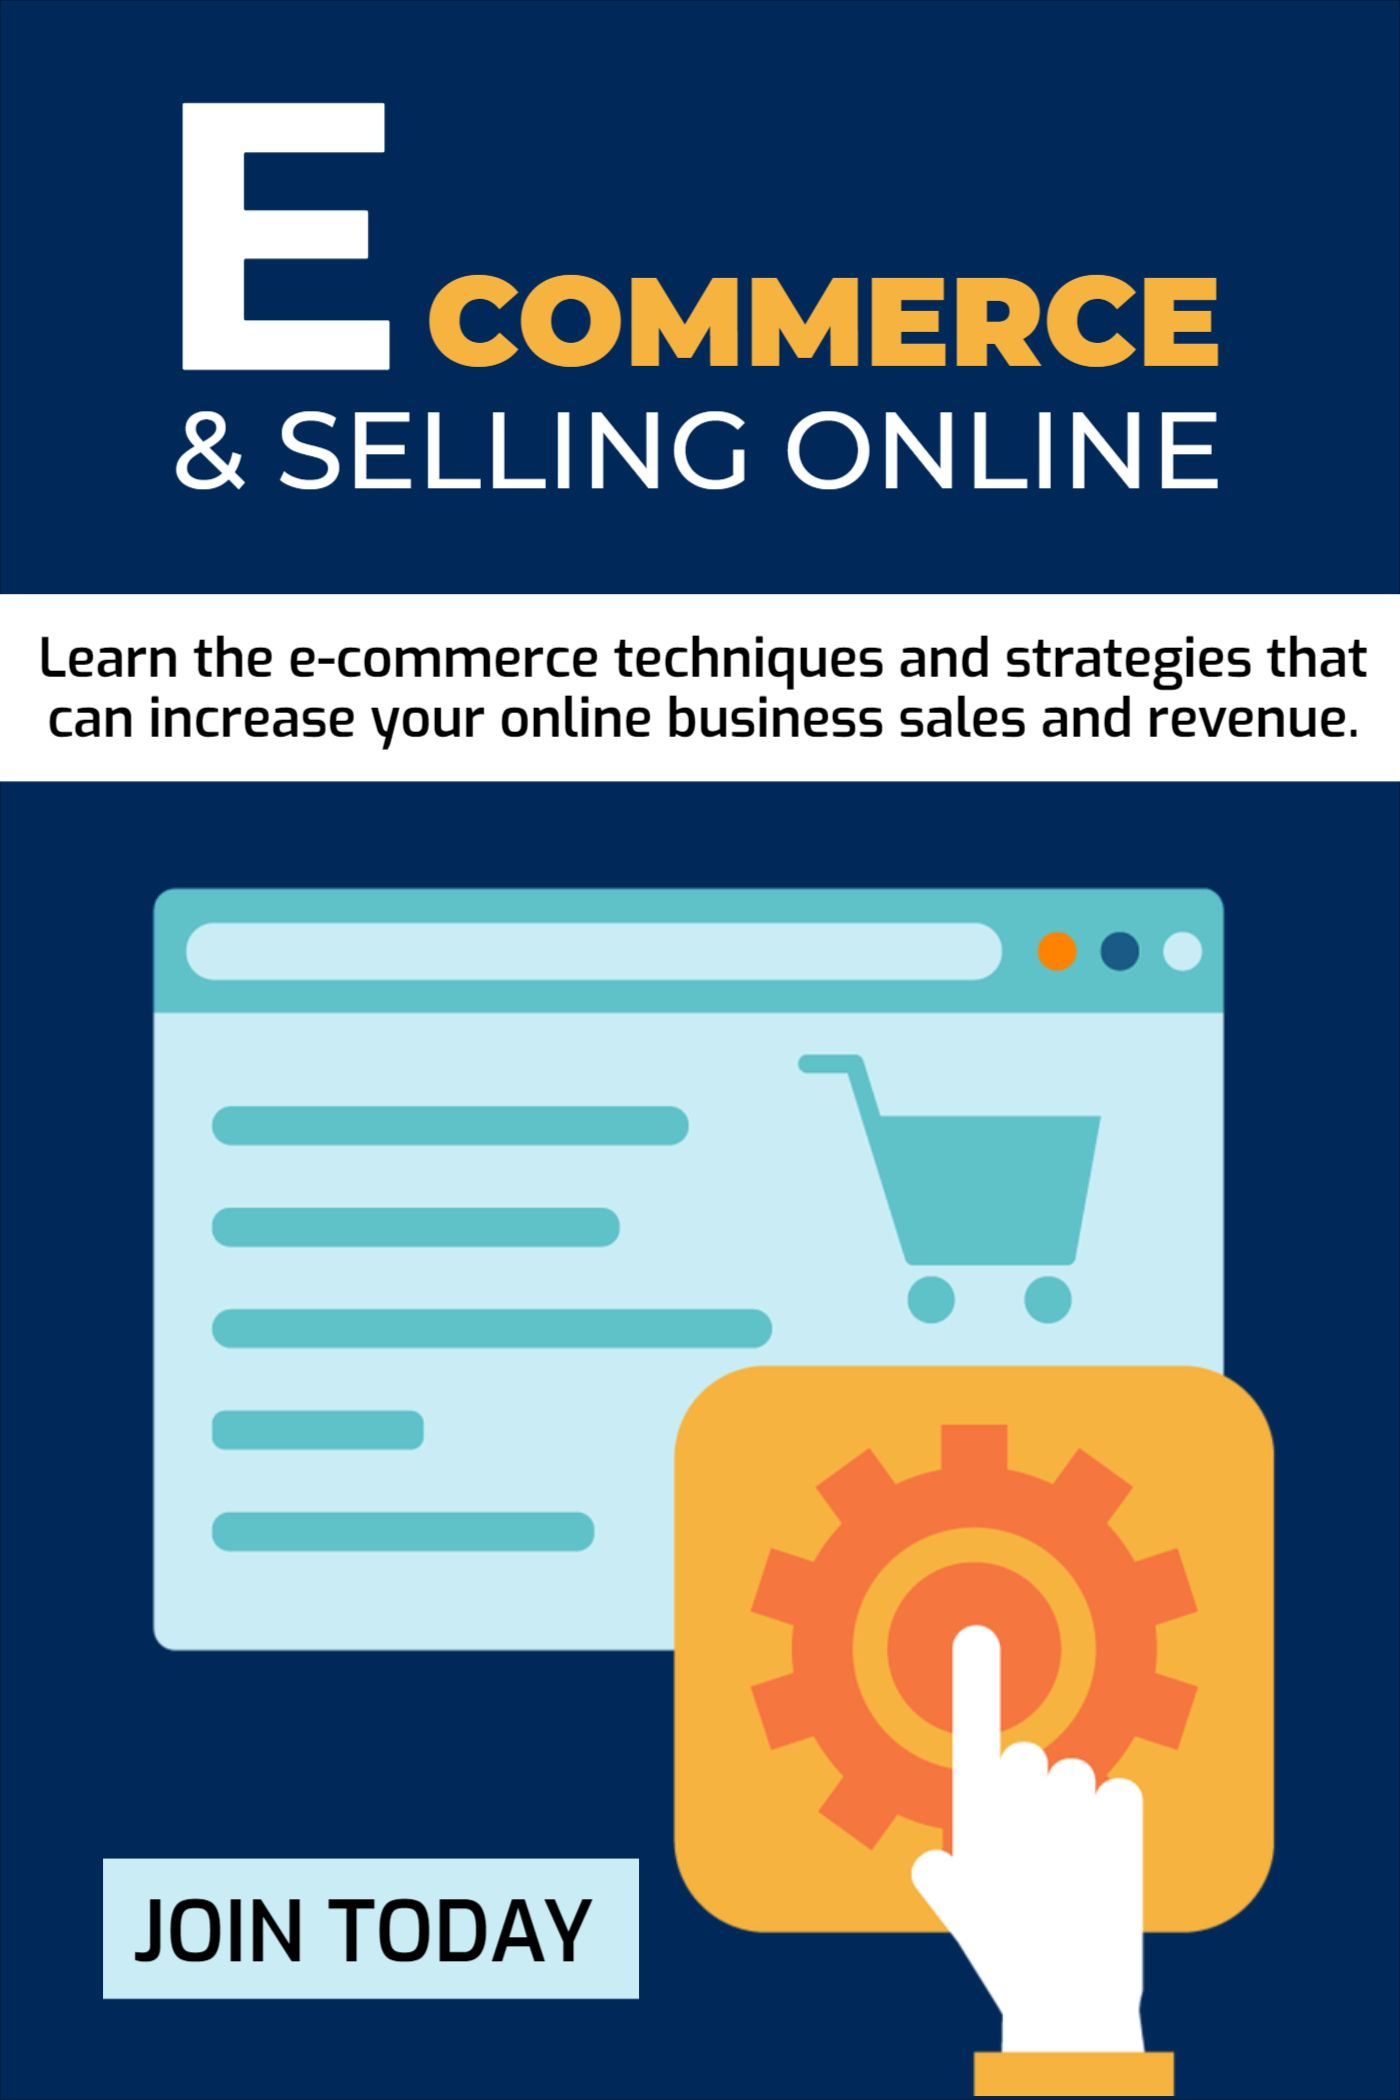 Ecommerce Online Course Cover Design